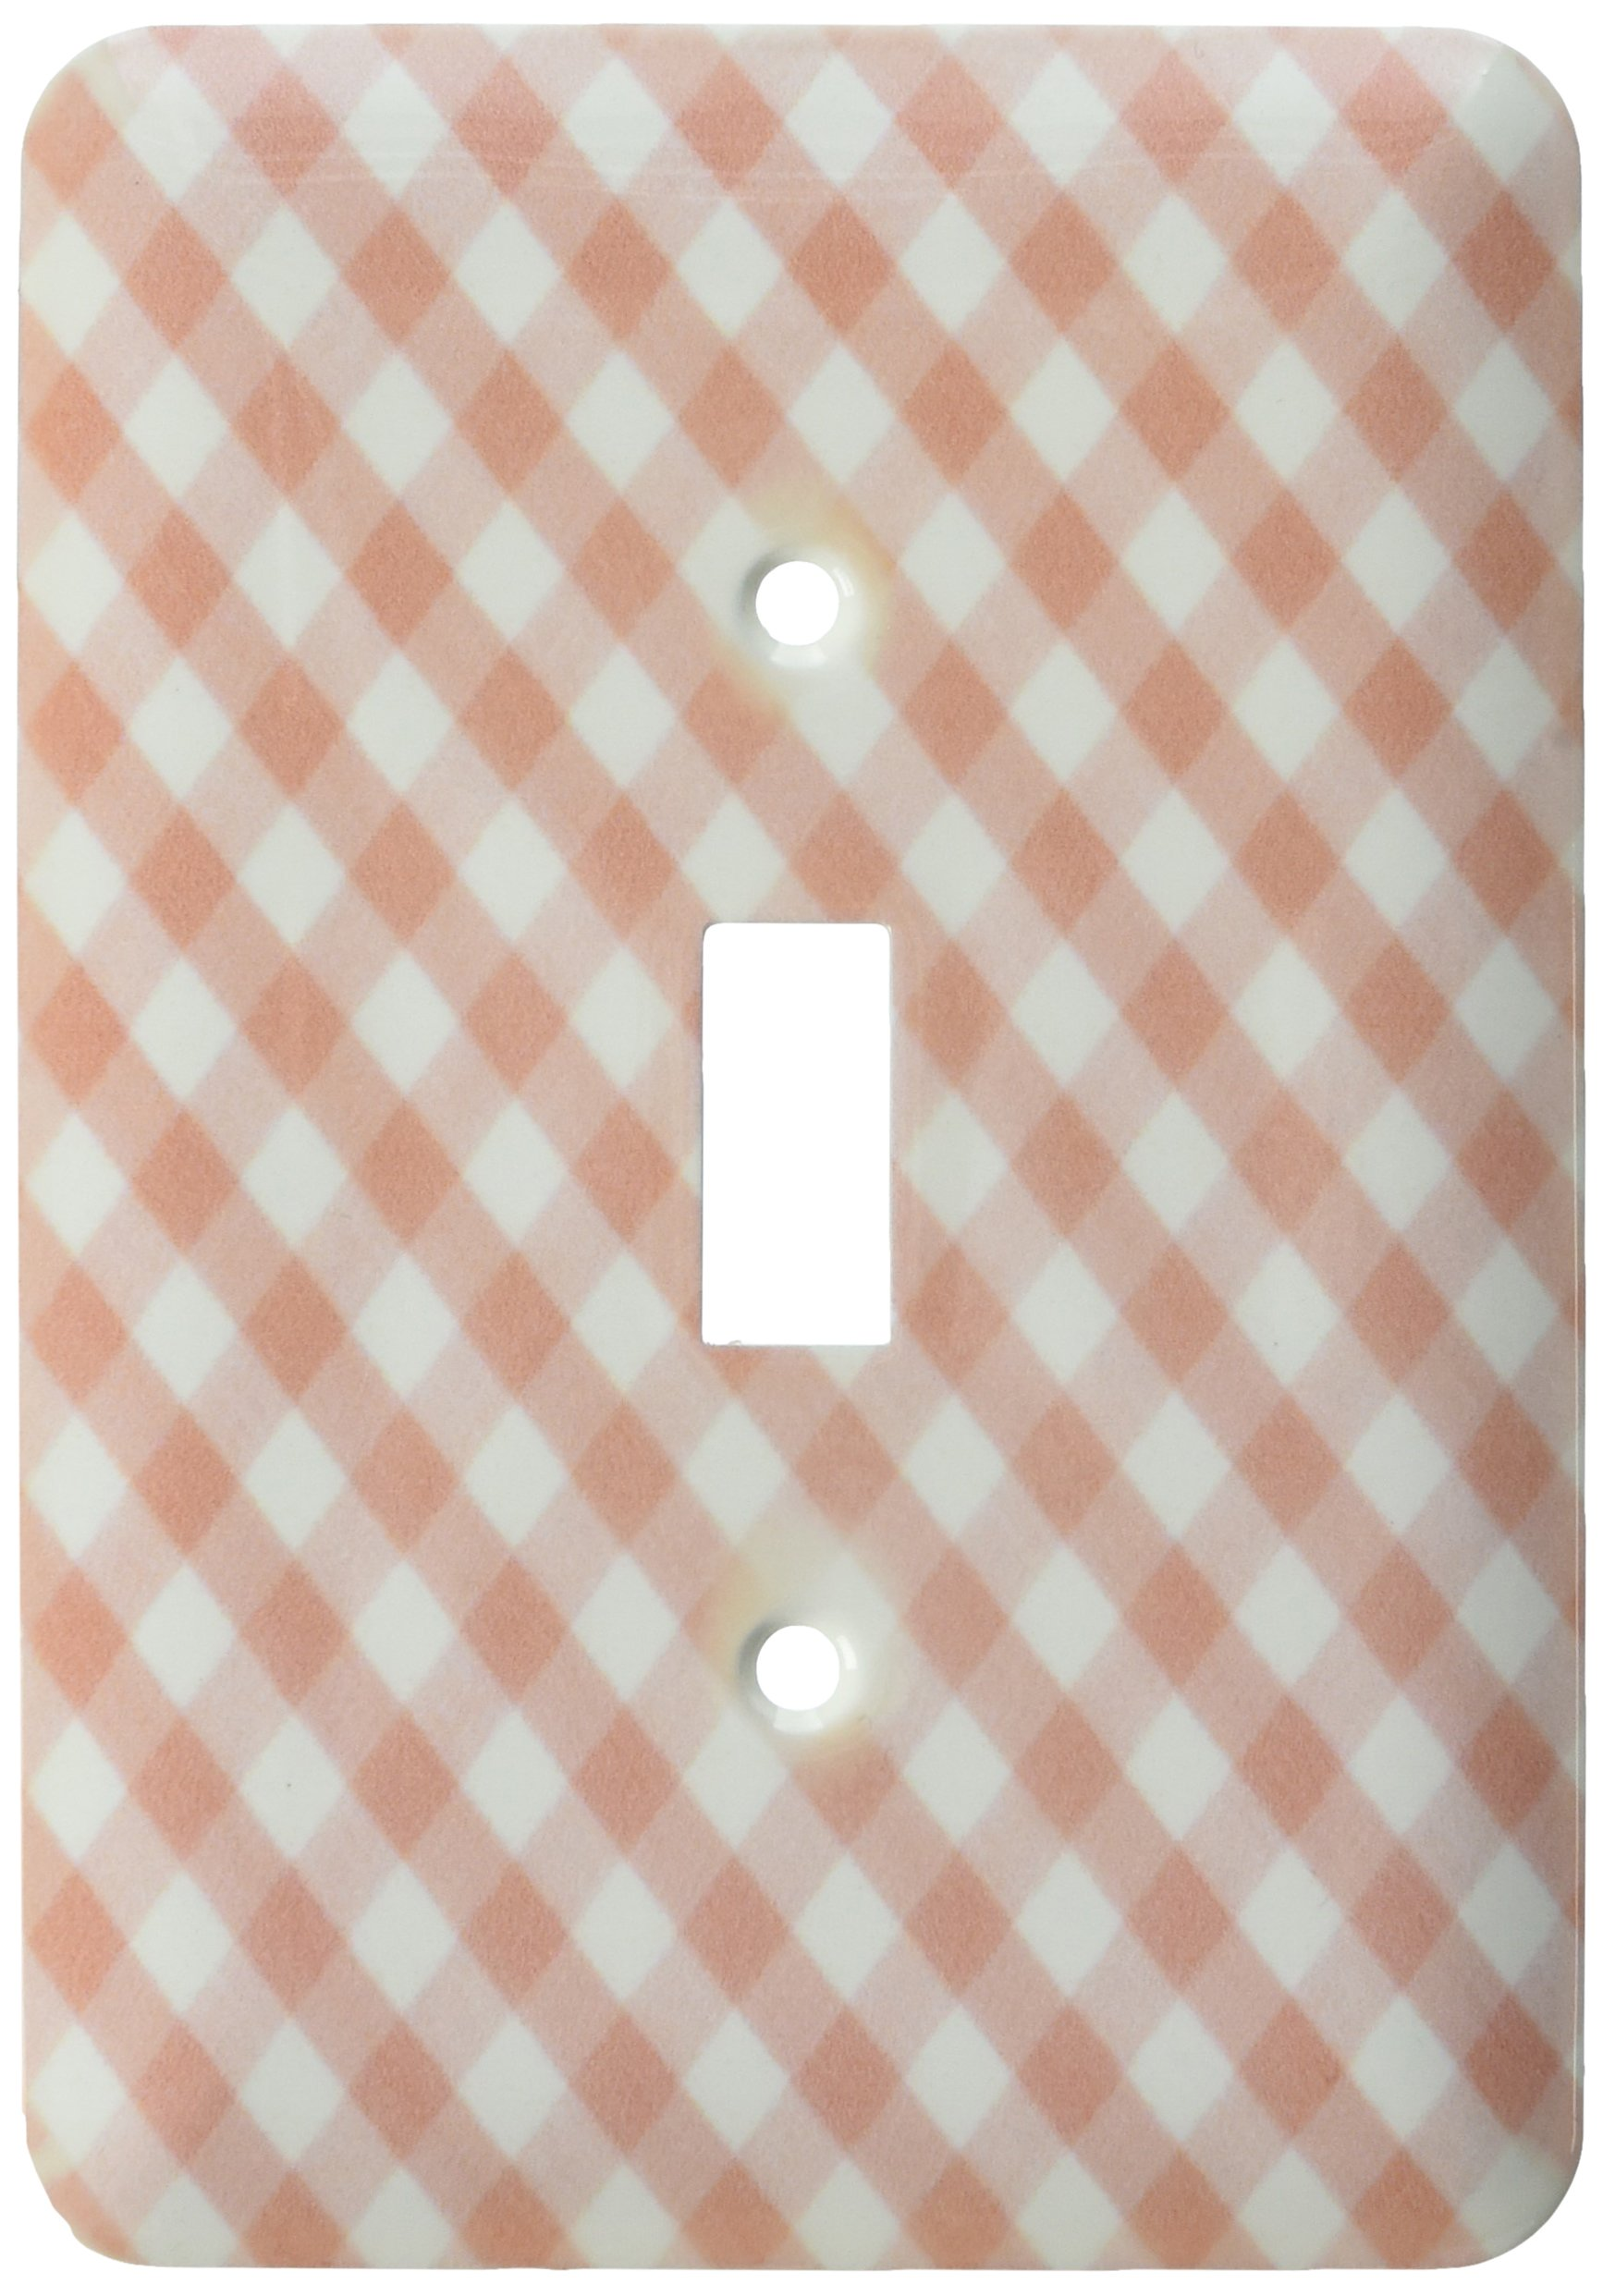 3dRose LLC lsp_113026_1 Brown and White Gingham Pattern Traditional Checkered Rustic Checks Retro Country Kitchen Dining Single Toggle Switch